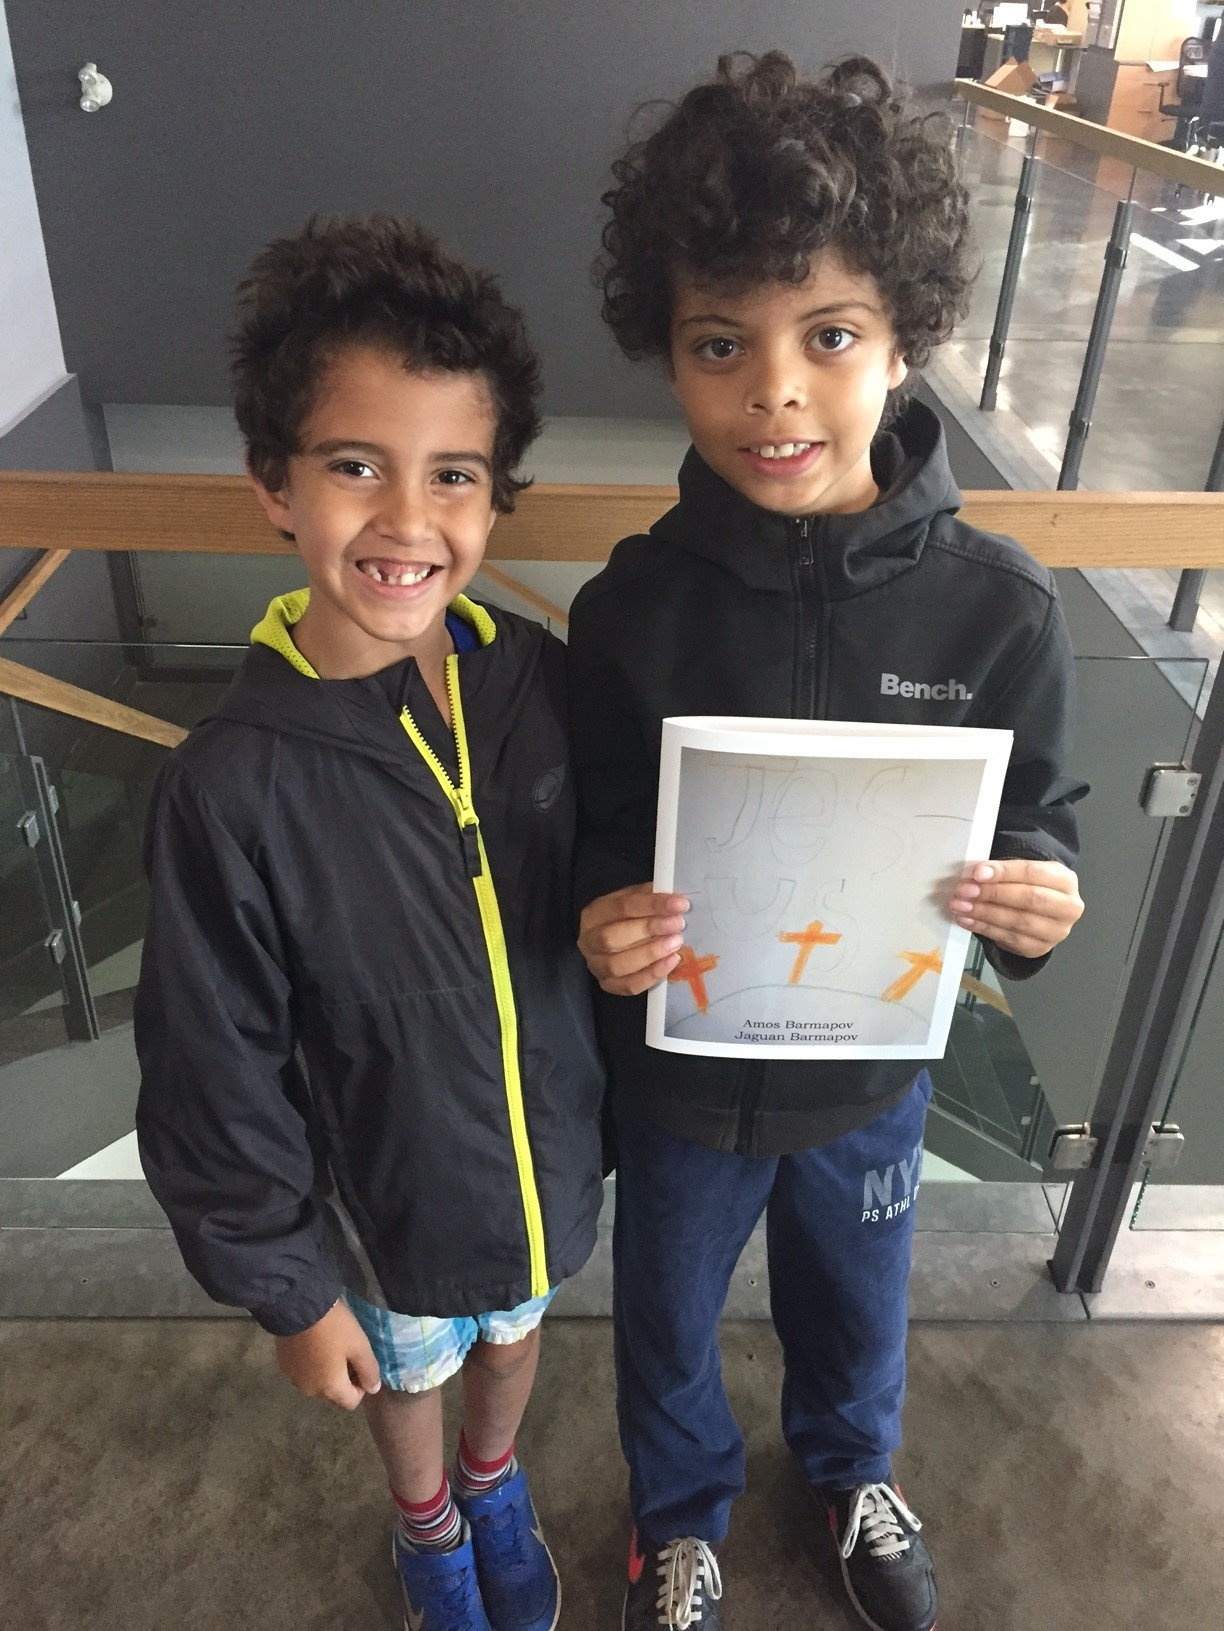 This is Jaguan (left) and Amos (right) at the printing house looking at their book proof.